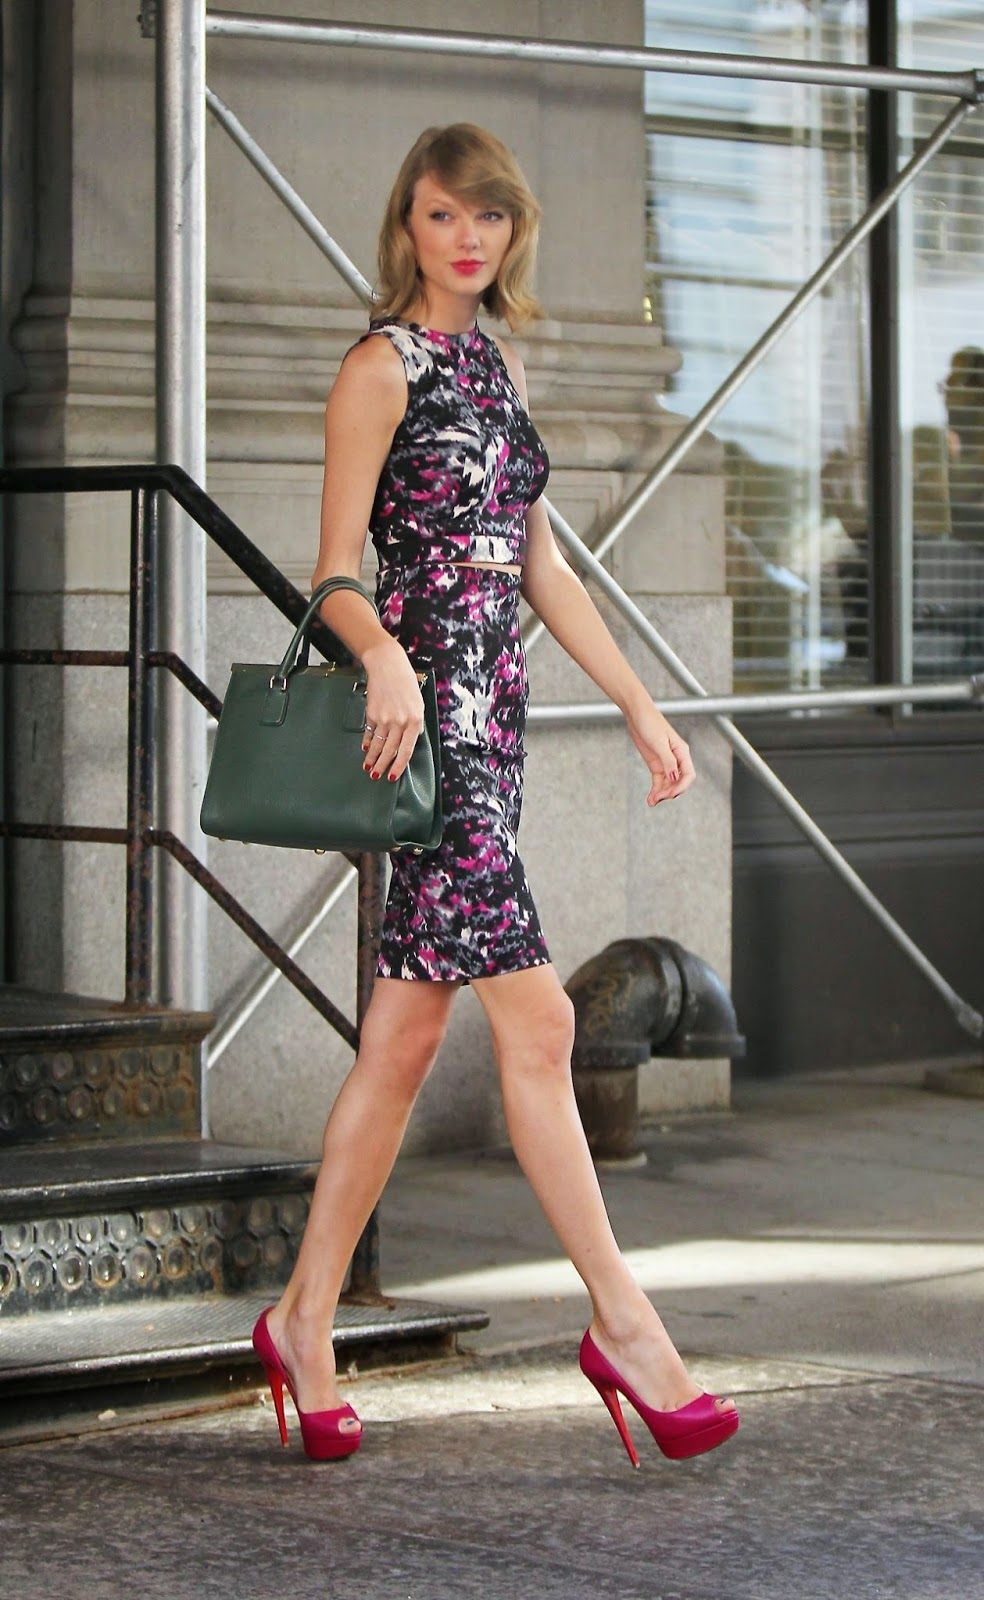 Taylor Swift Flaunts Floral Dress And Towering Pink Pumps